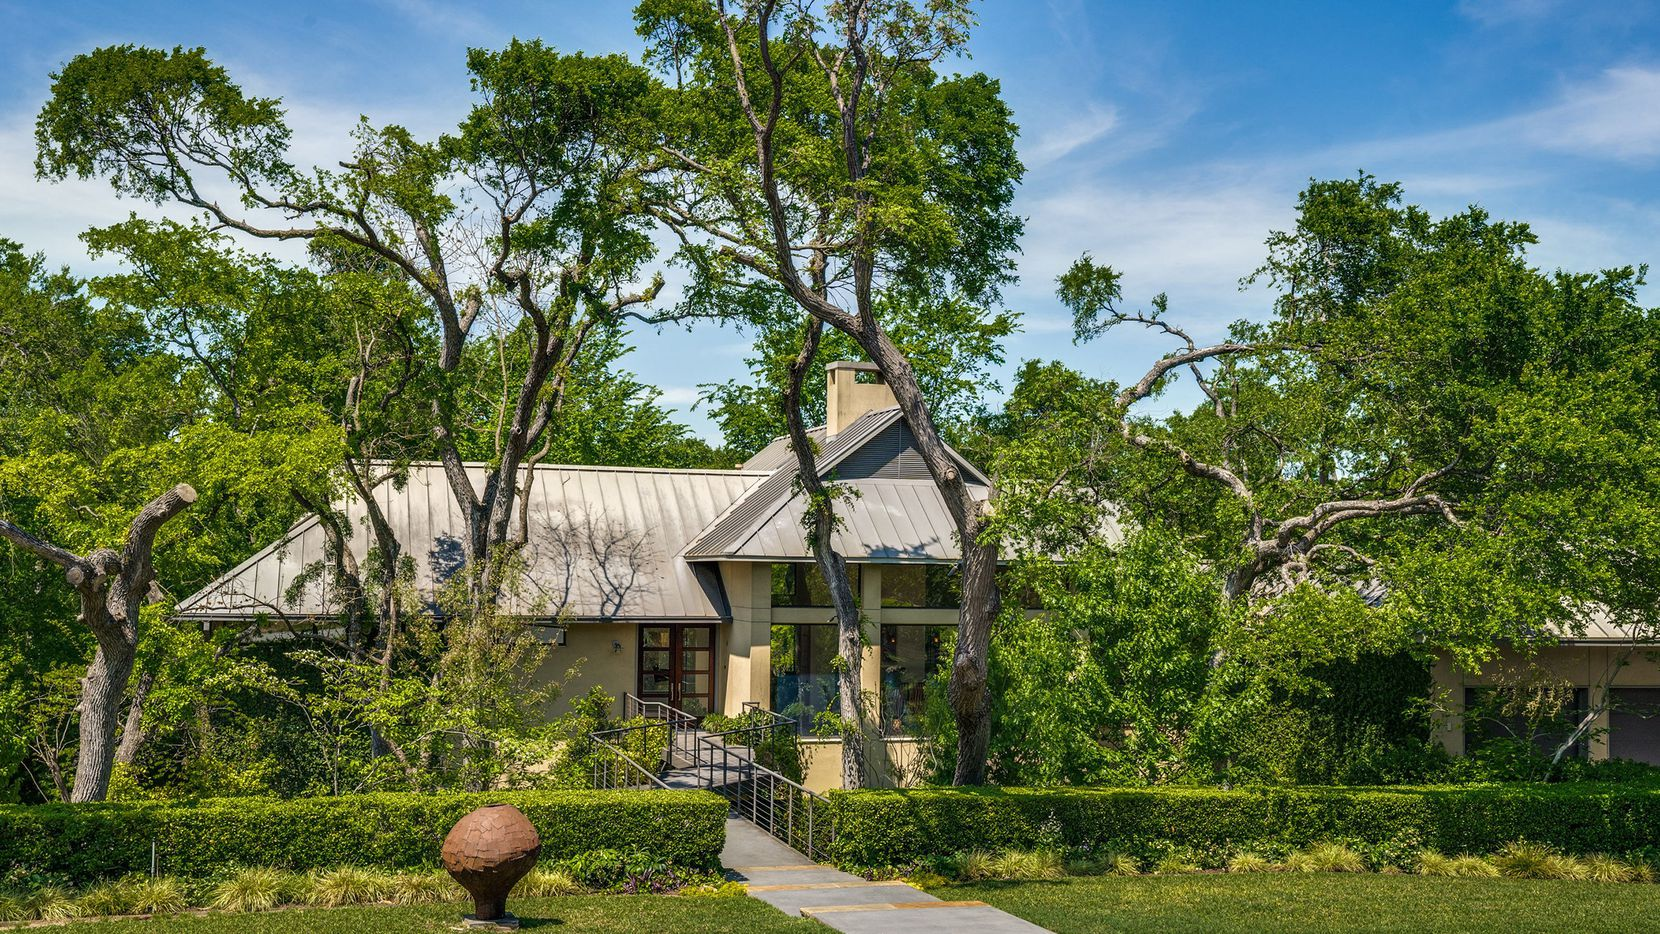 The property at 10045 Surrey Oaks Circle in Preston Hollow is offered for $3,750,000.